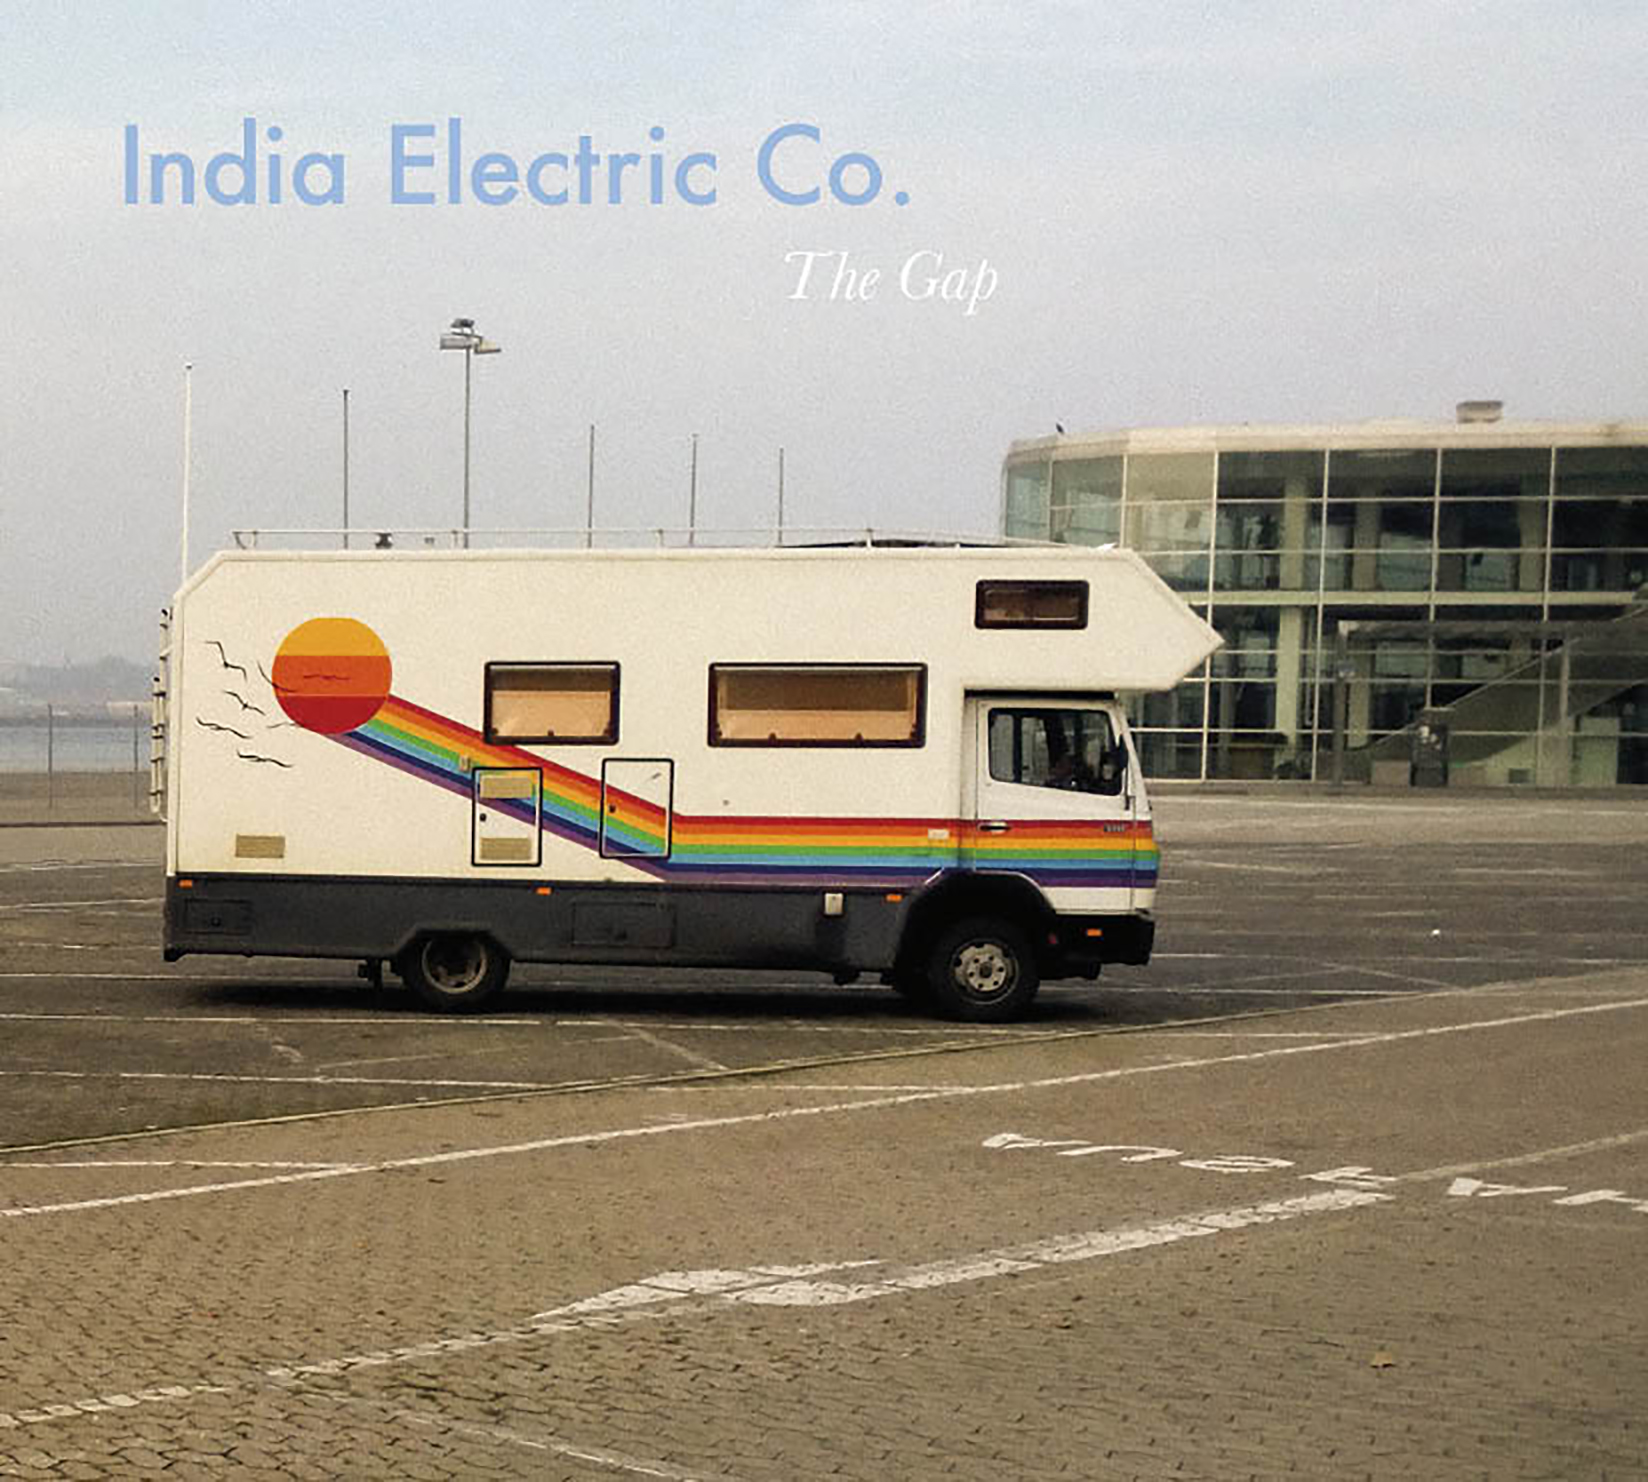 India Electric Co.